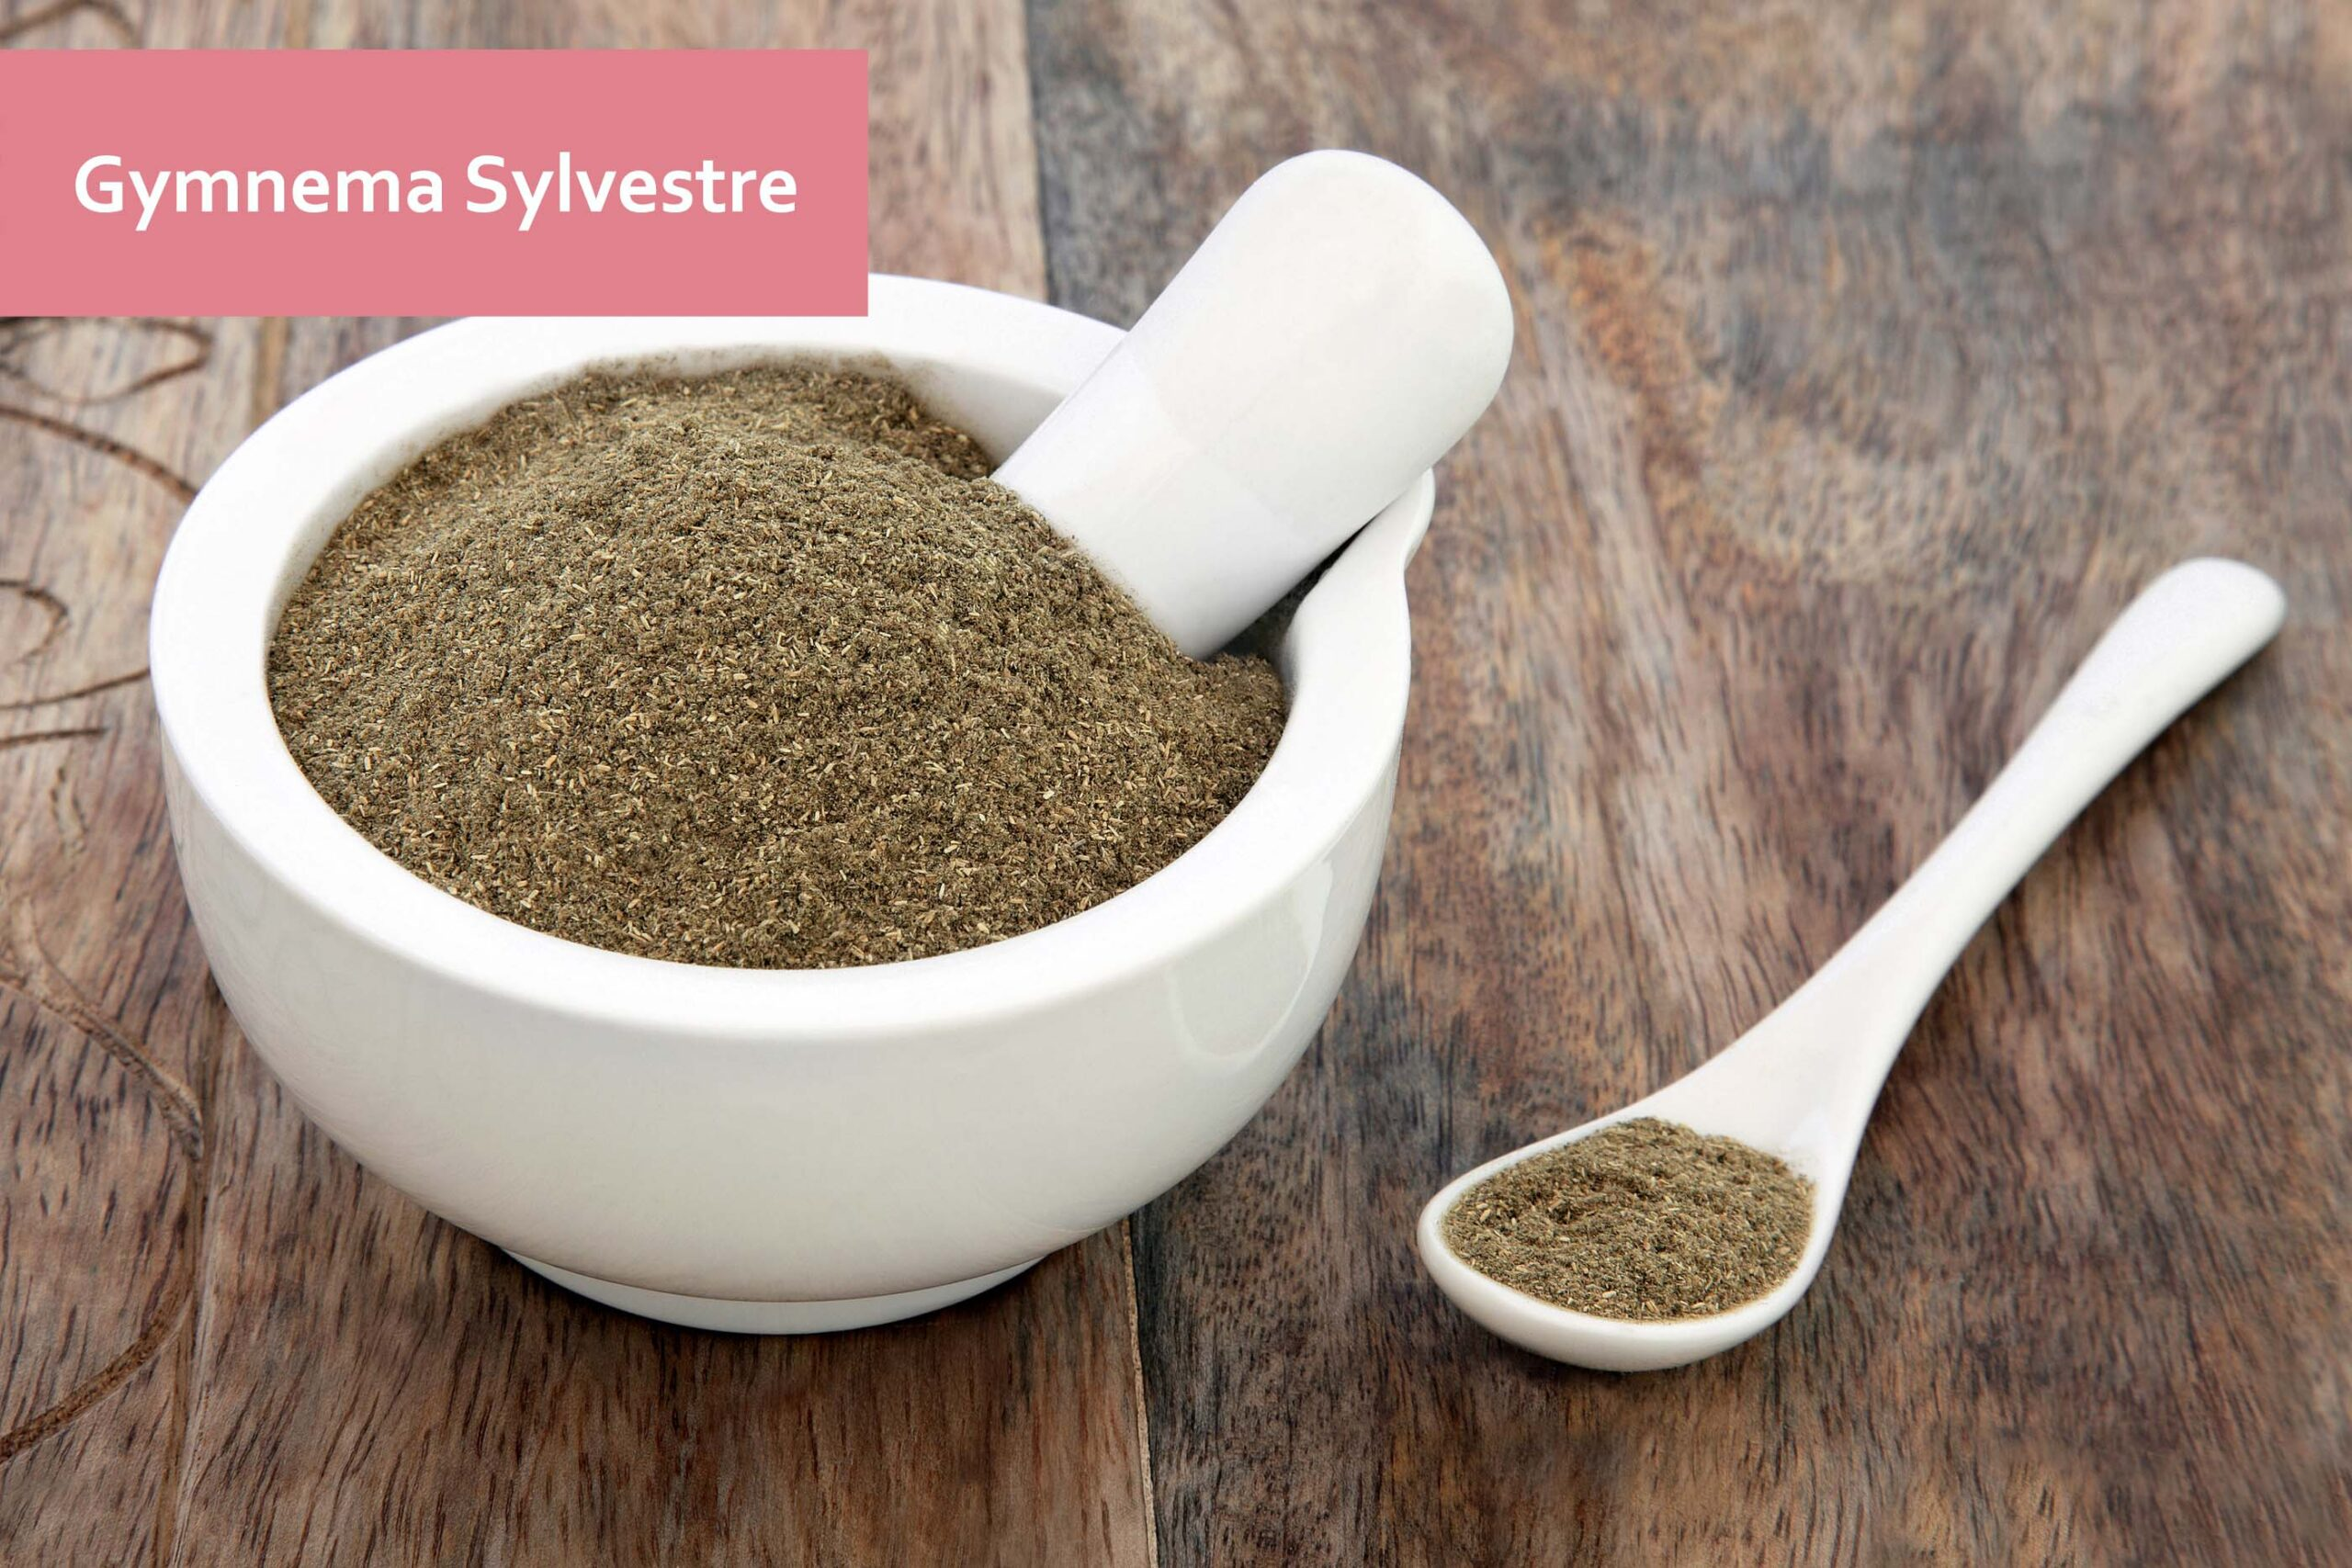 Gymnema sylvestre herb used in natural alternative medicine over